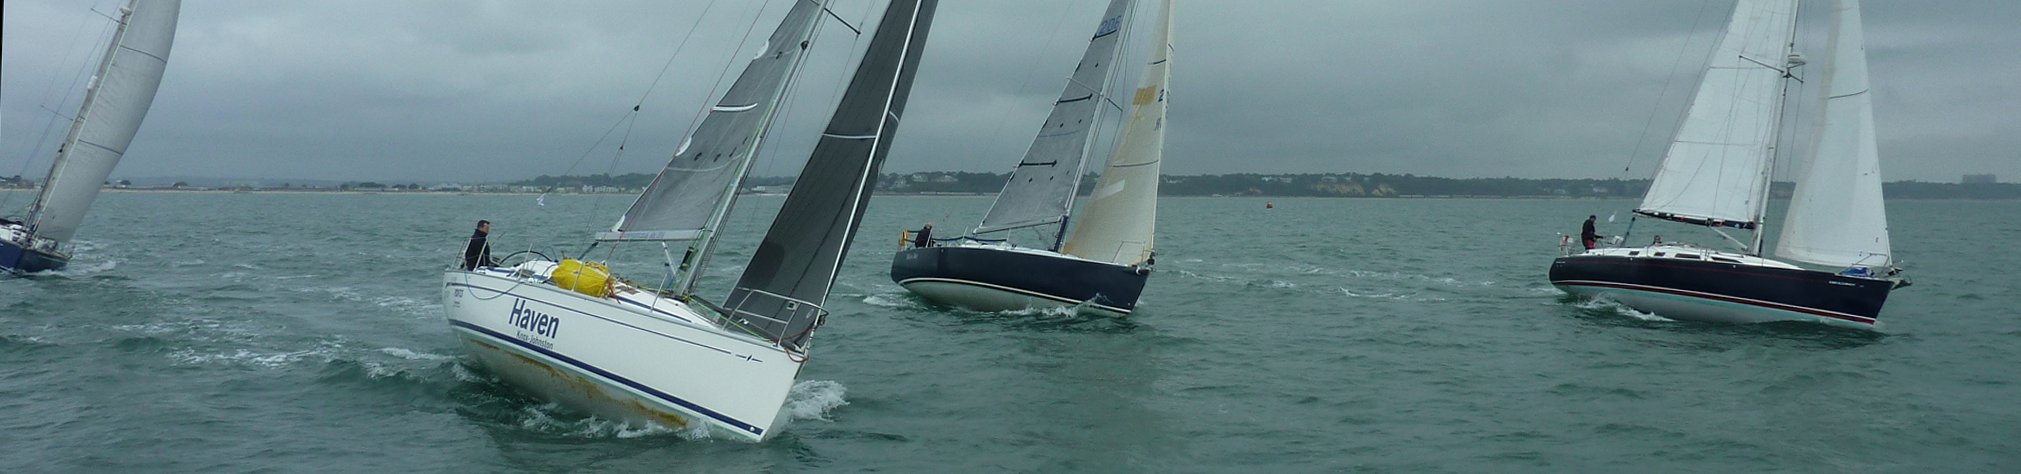 PYRA 2015 Two Handed Regatta 29L